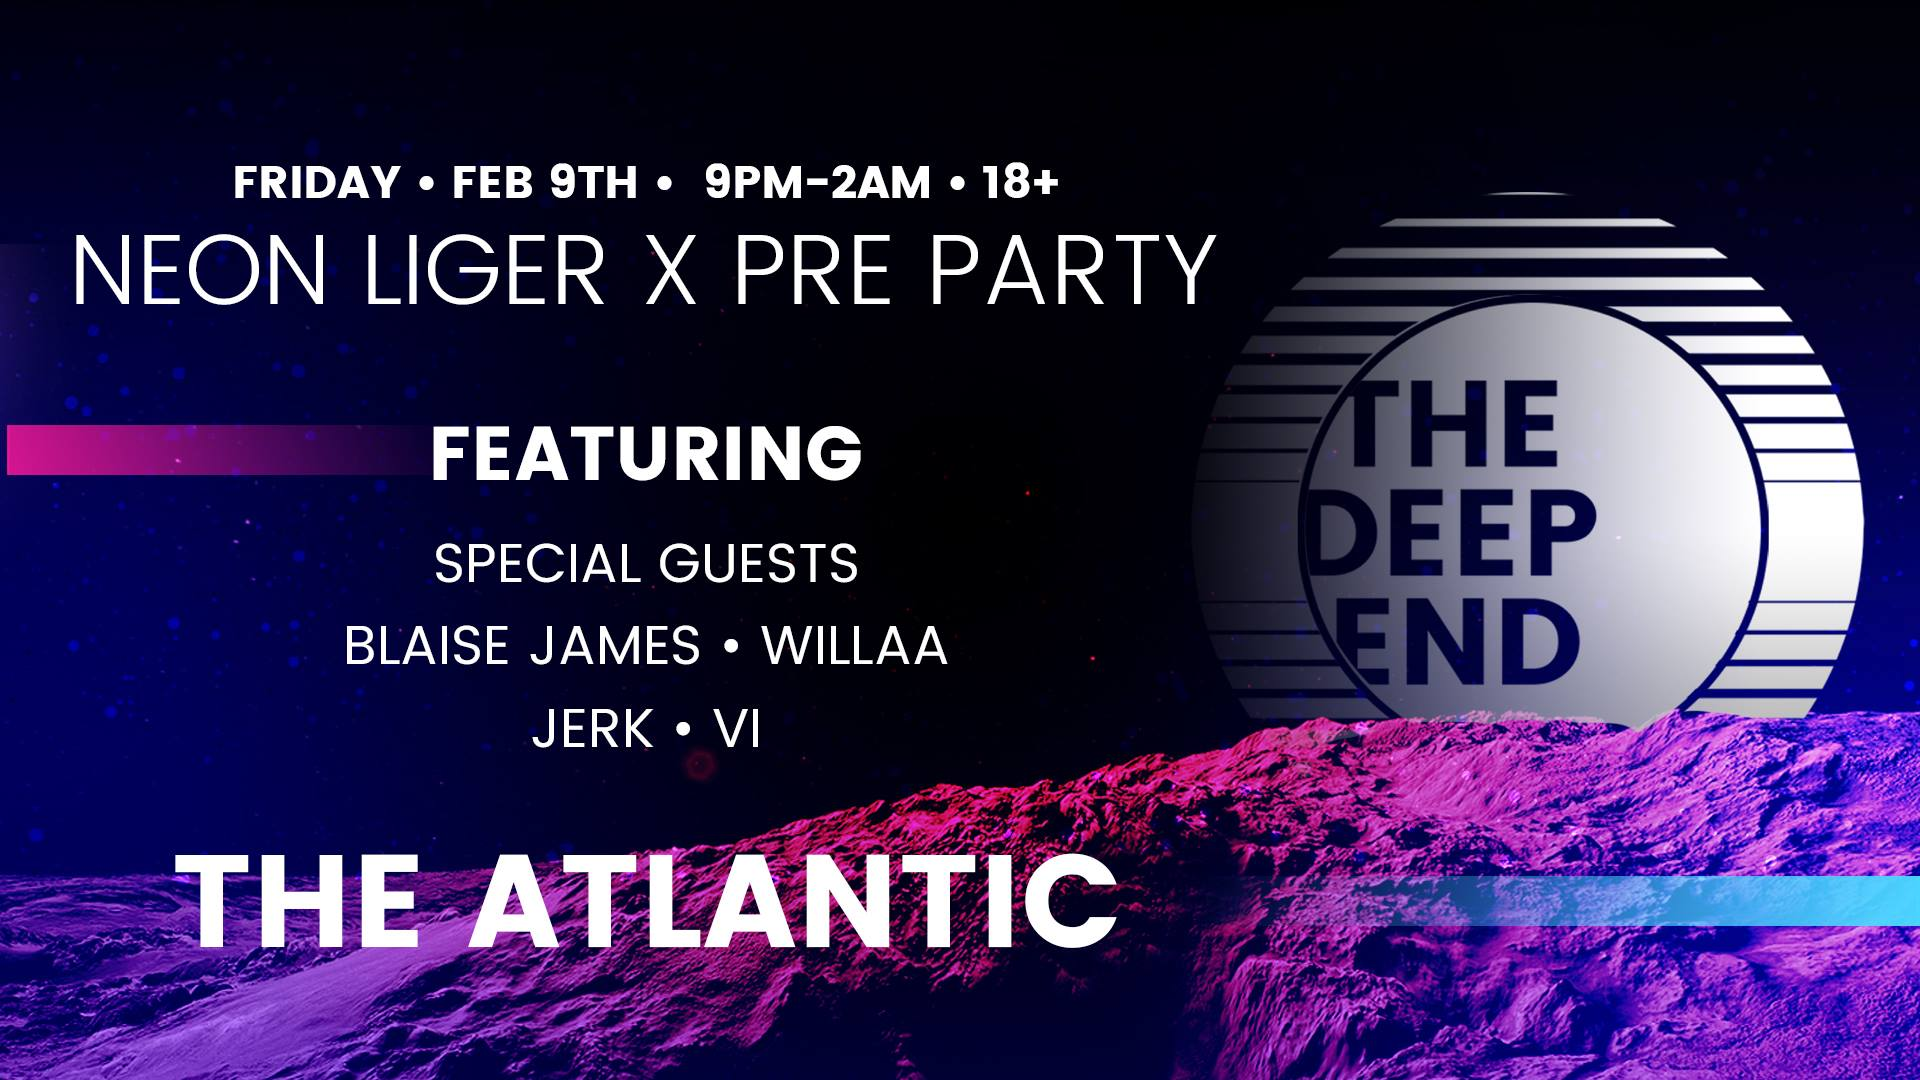 Friday, February 9th NEON LIGER X Pre Party The Deep End  Featuring:  Special guests  Blaise James Willaa JeRK Vi   The Atlantic with reinforced production in partnership with  Gator Sound and Lighting .  18+ $5